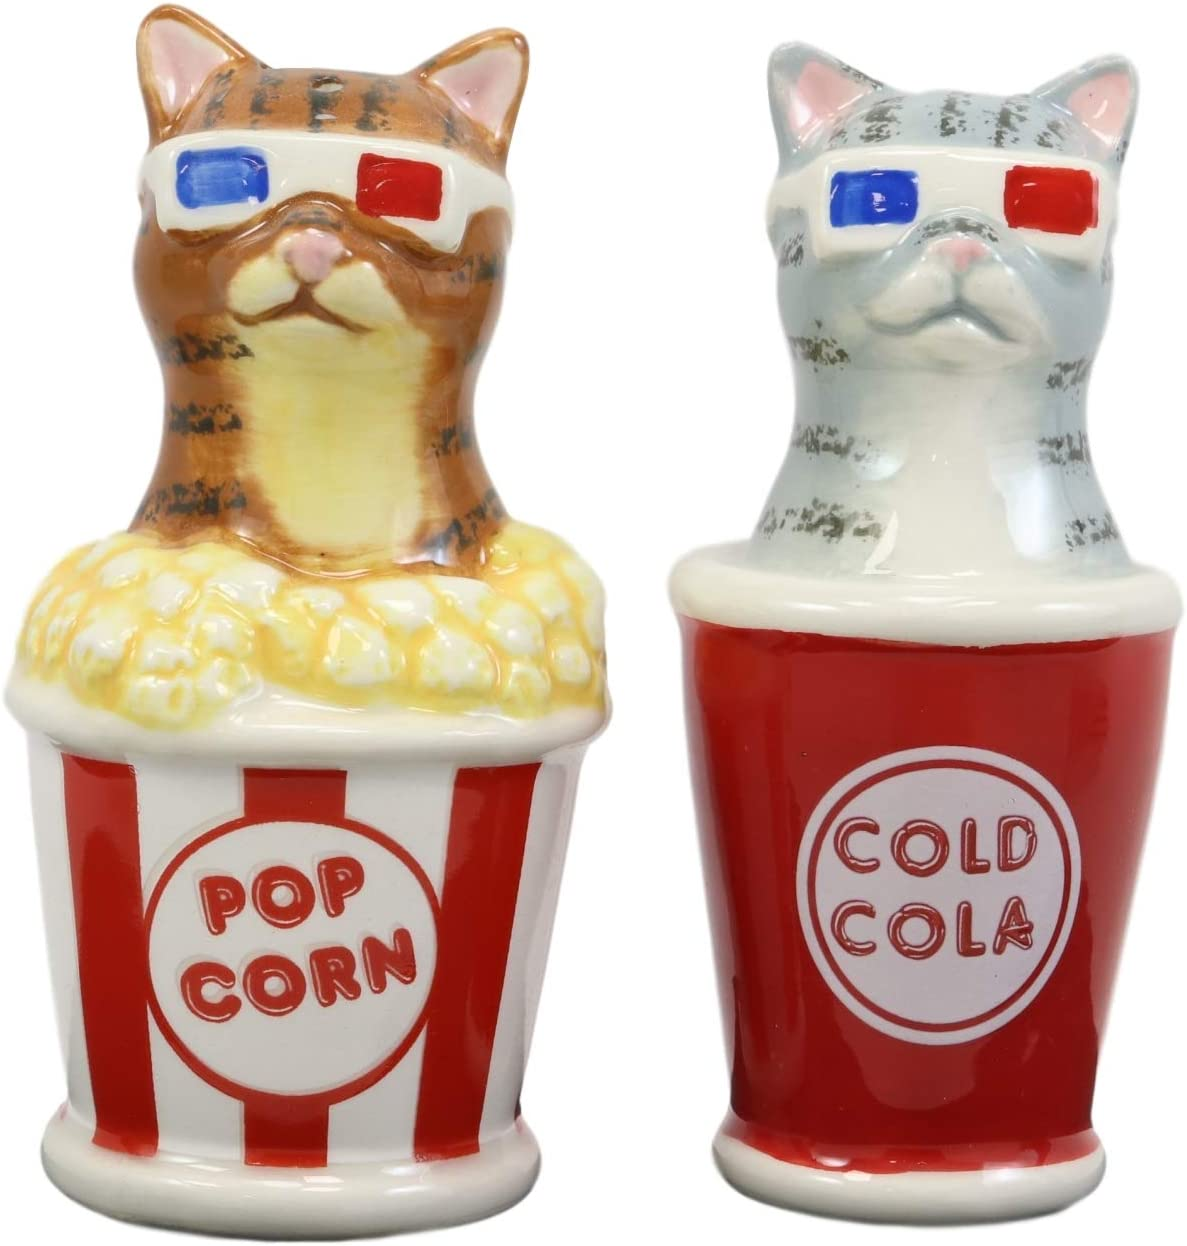 Ebros Funky Cats With Cinema 3D Glasses Sitting In Soda Pop Cup And Popcorn Tub At The Movies Salt And Pepper Shakers Set Ceramic Figurines Party Kitchen Tabletop Cat Decor Collectible